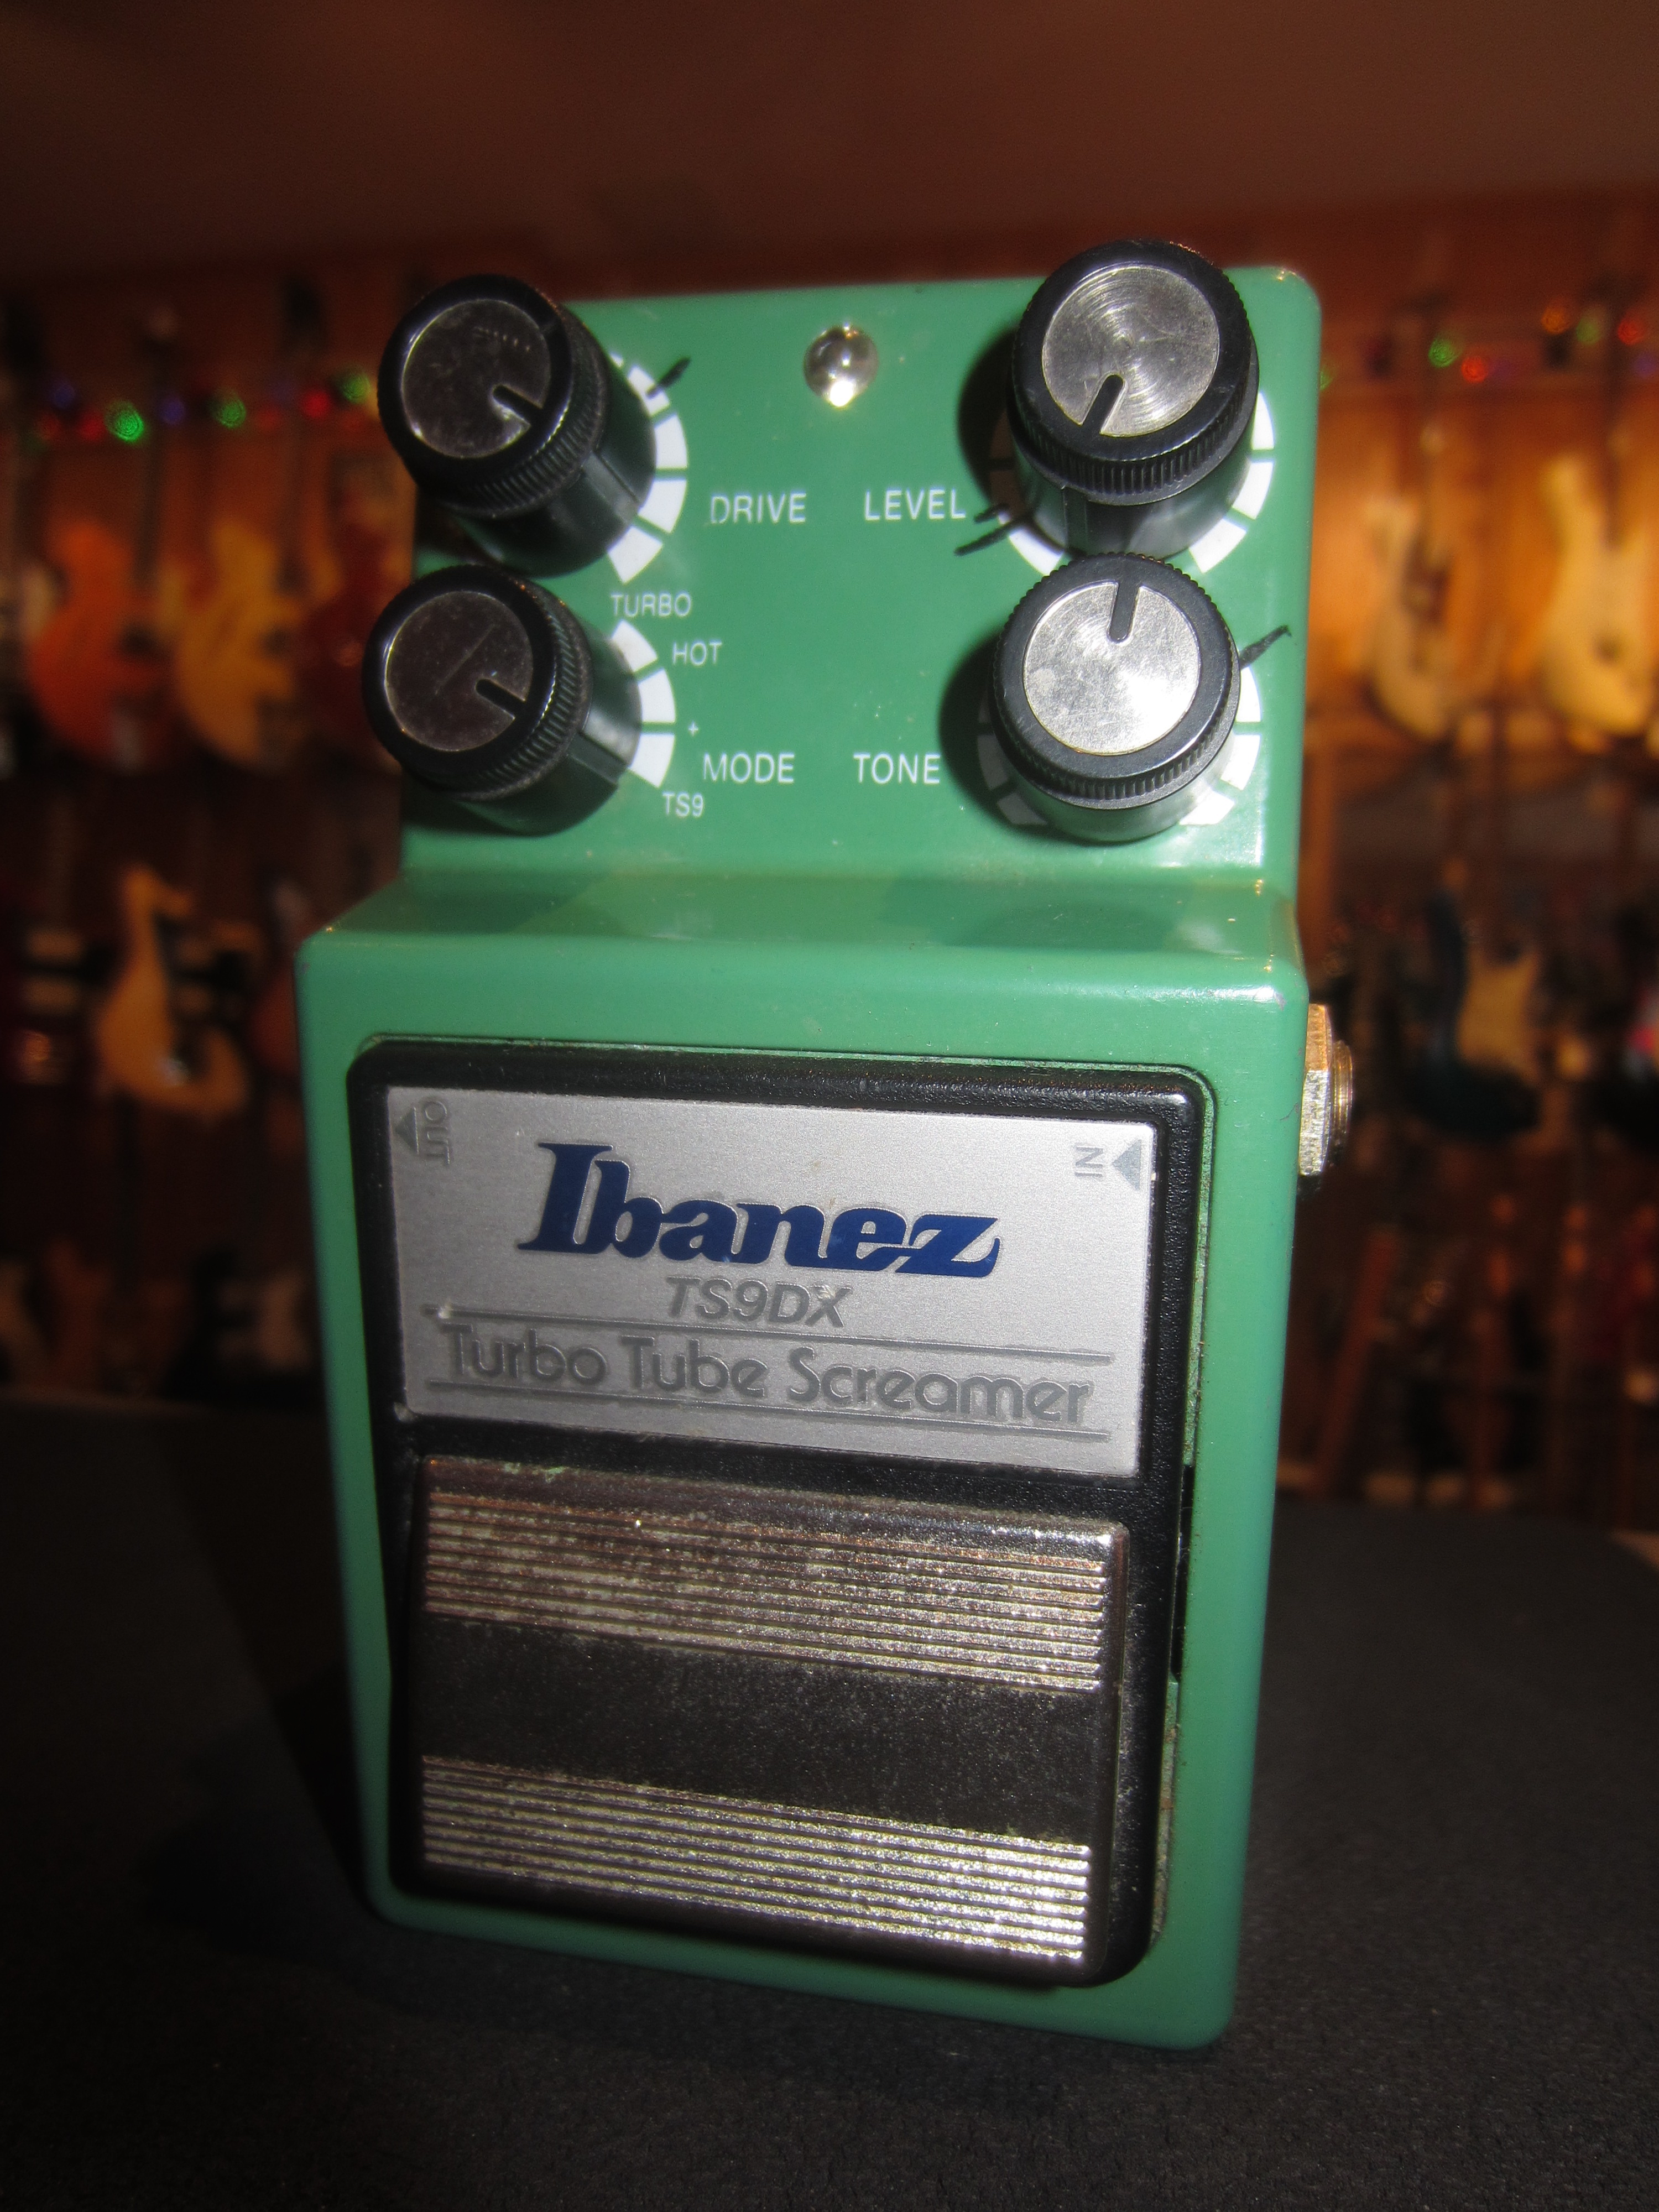 ~2009 Ibanez TS-9DX Turbo Tube Screamer Overdrive Green